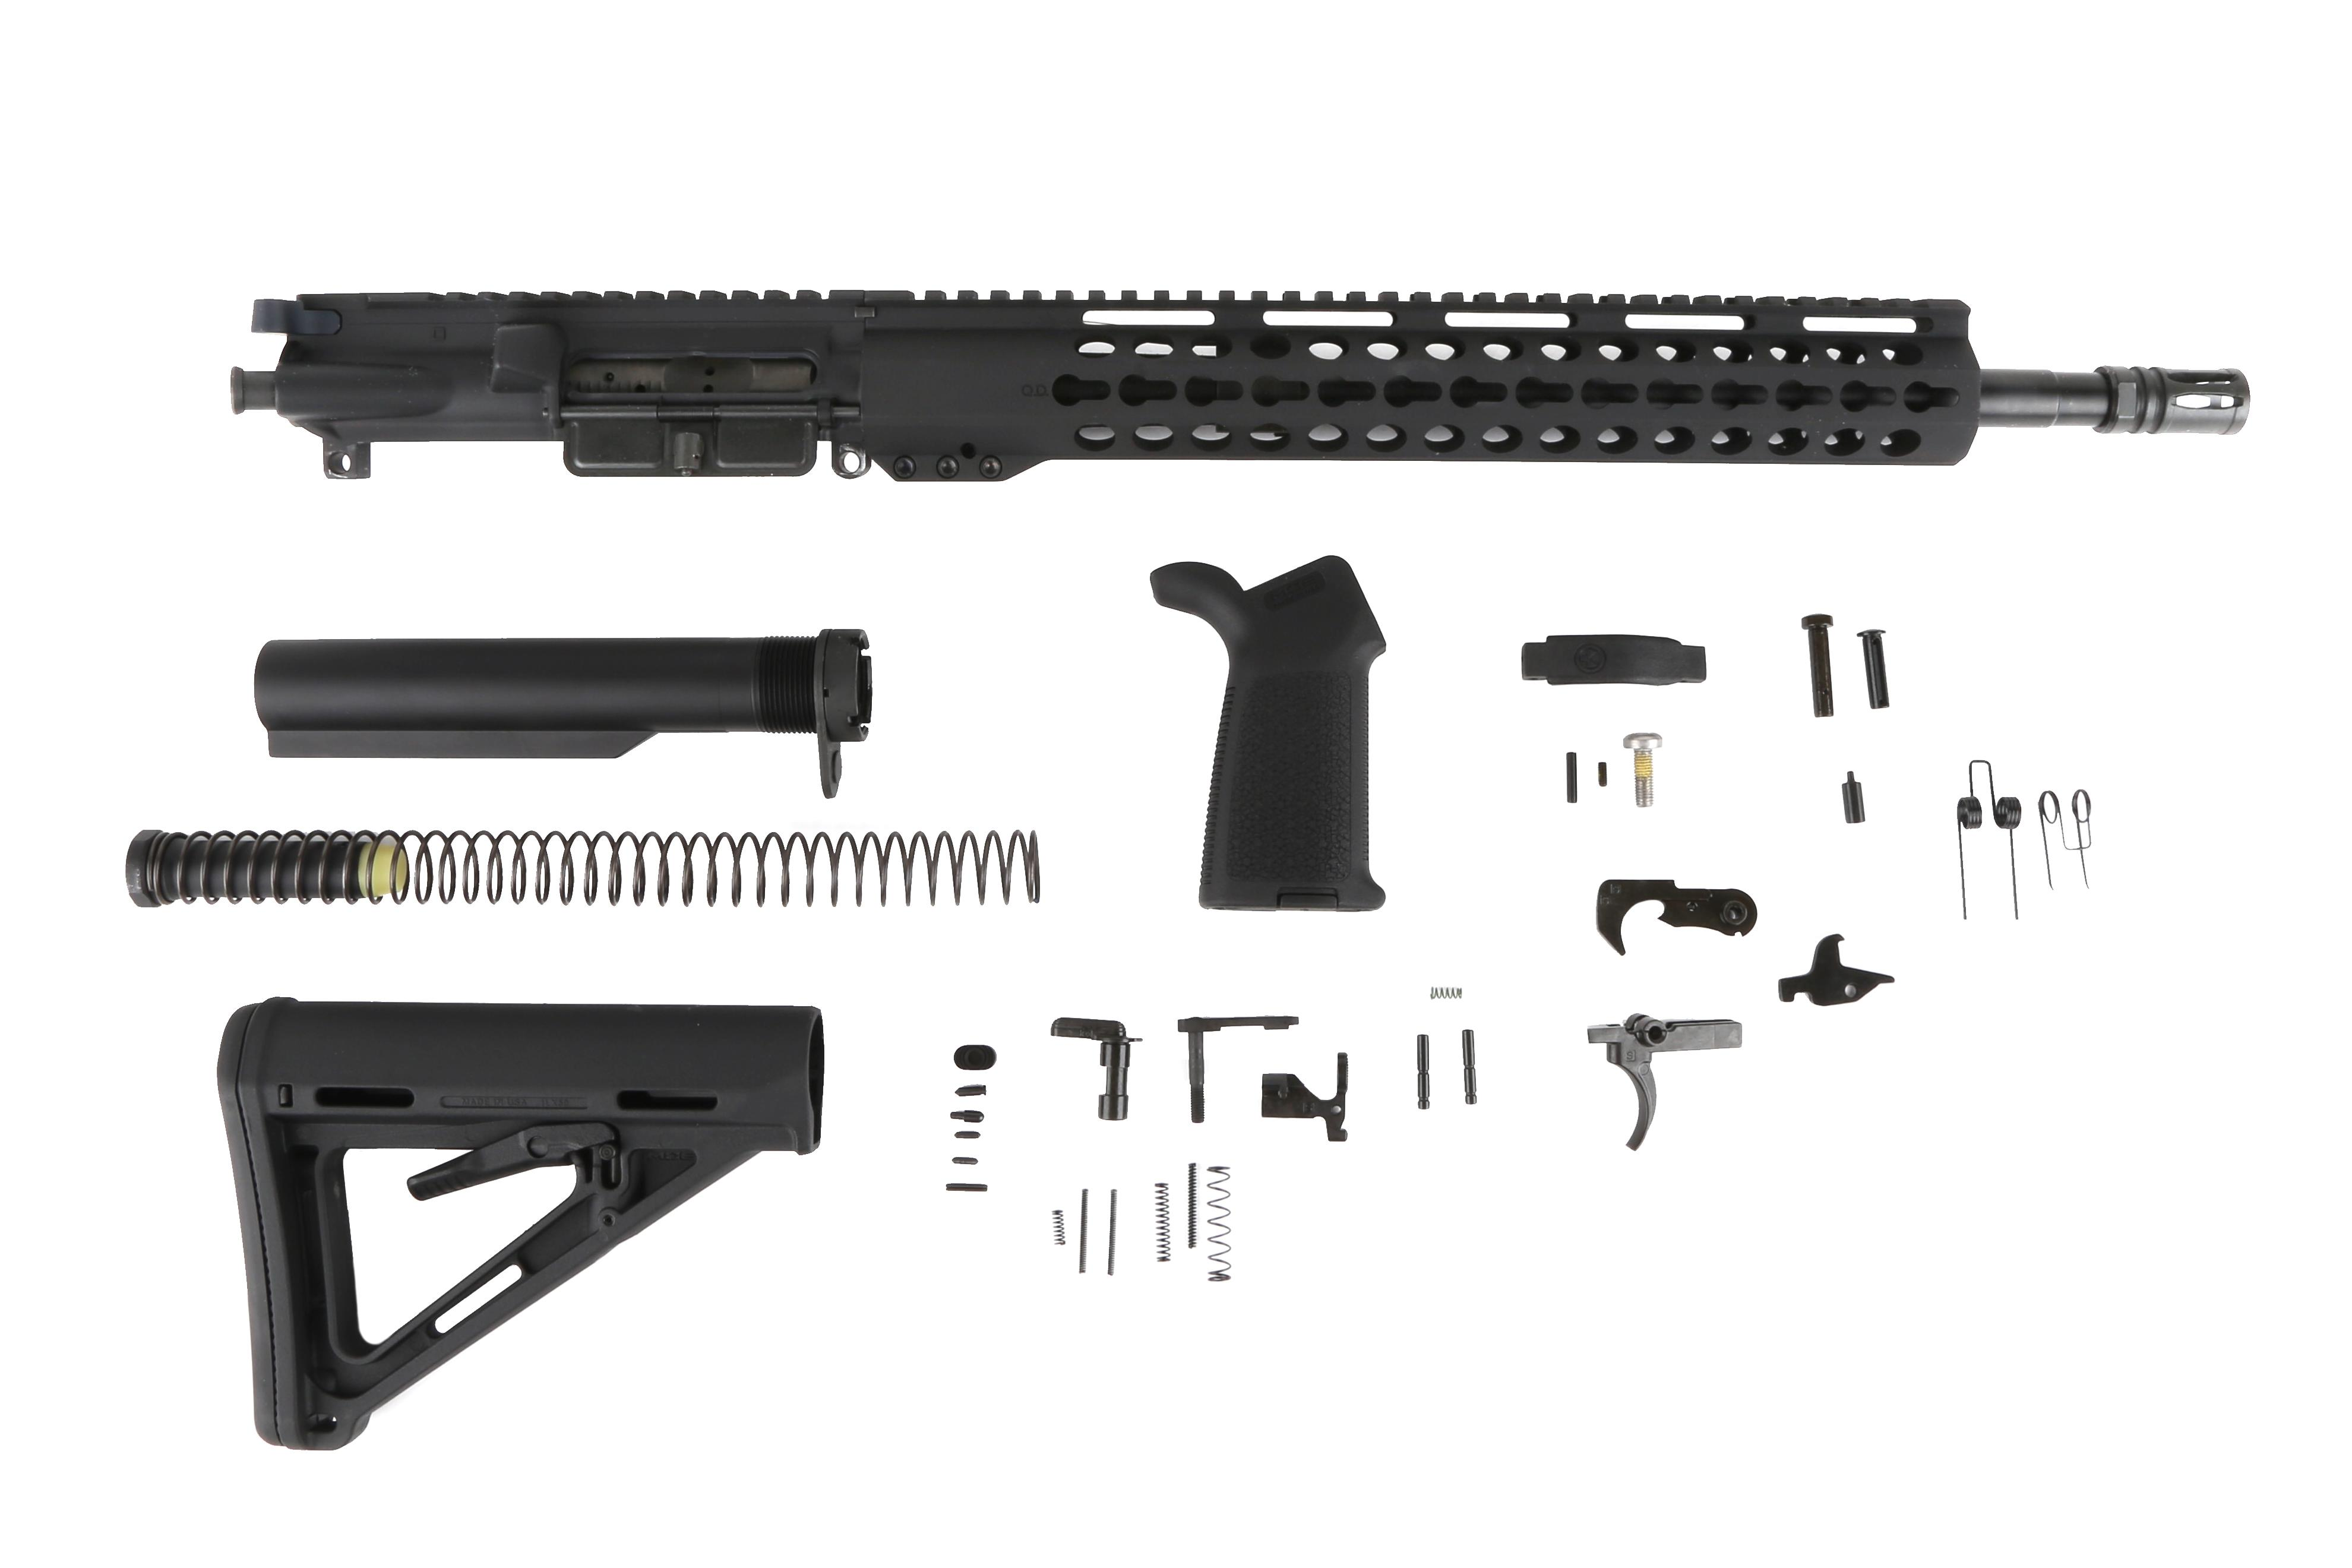 palmetto state armory  blk freedom rifle kit  with magpul  -  palmetto state armory  blk freedom rifle kit  with magpul moefurniture and